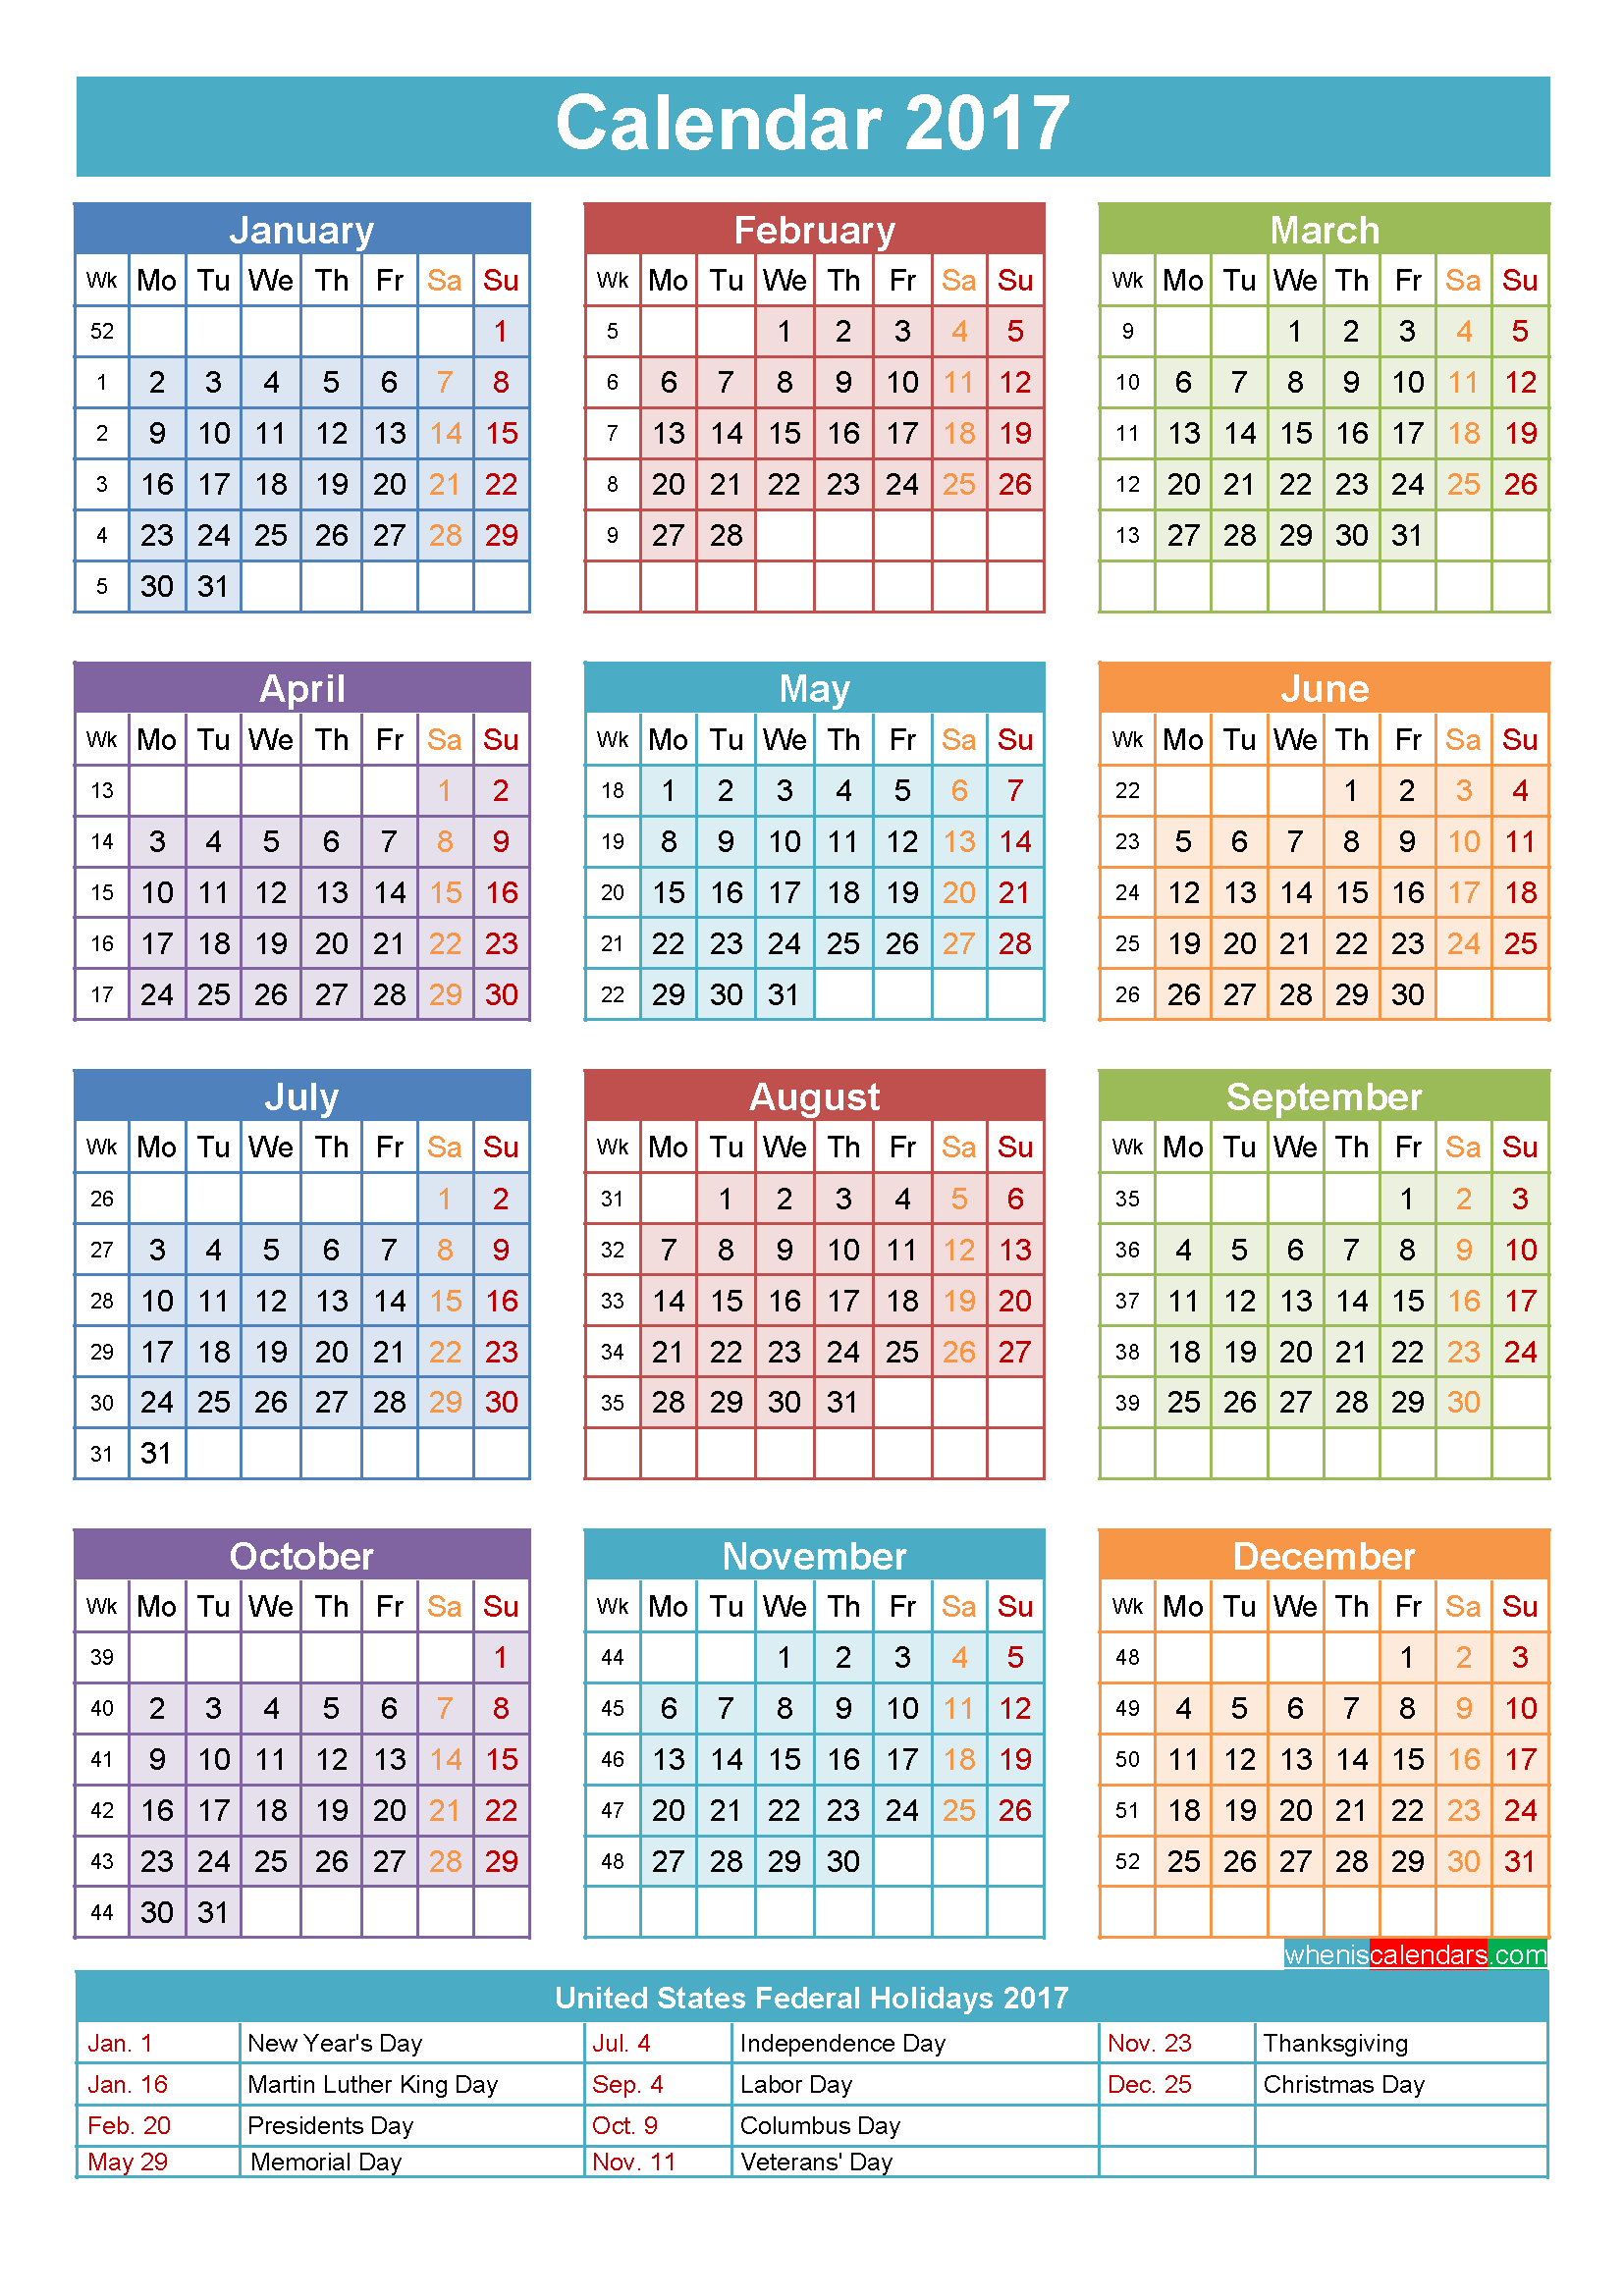 Calendar Planner C : Calendar with holidays printable yearly